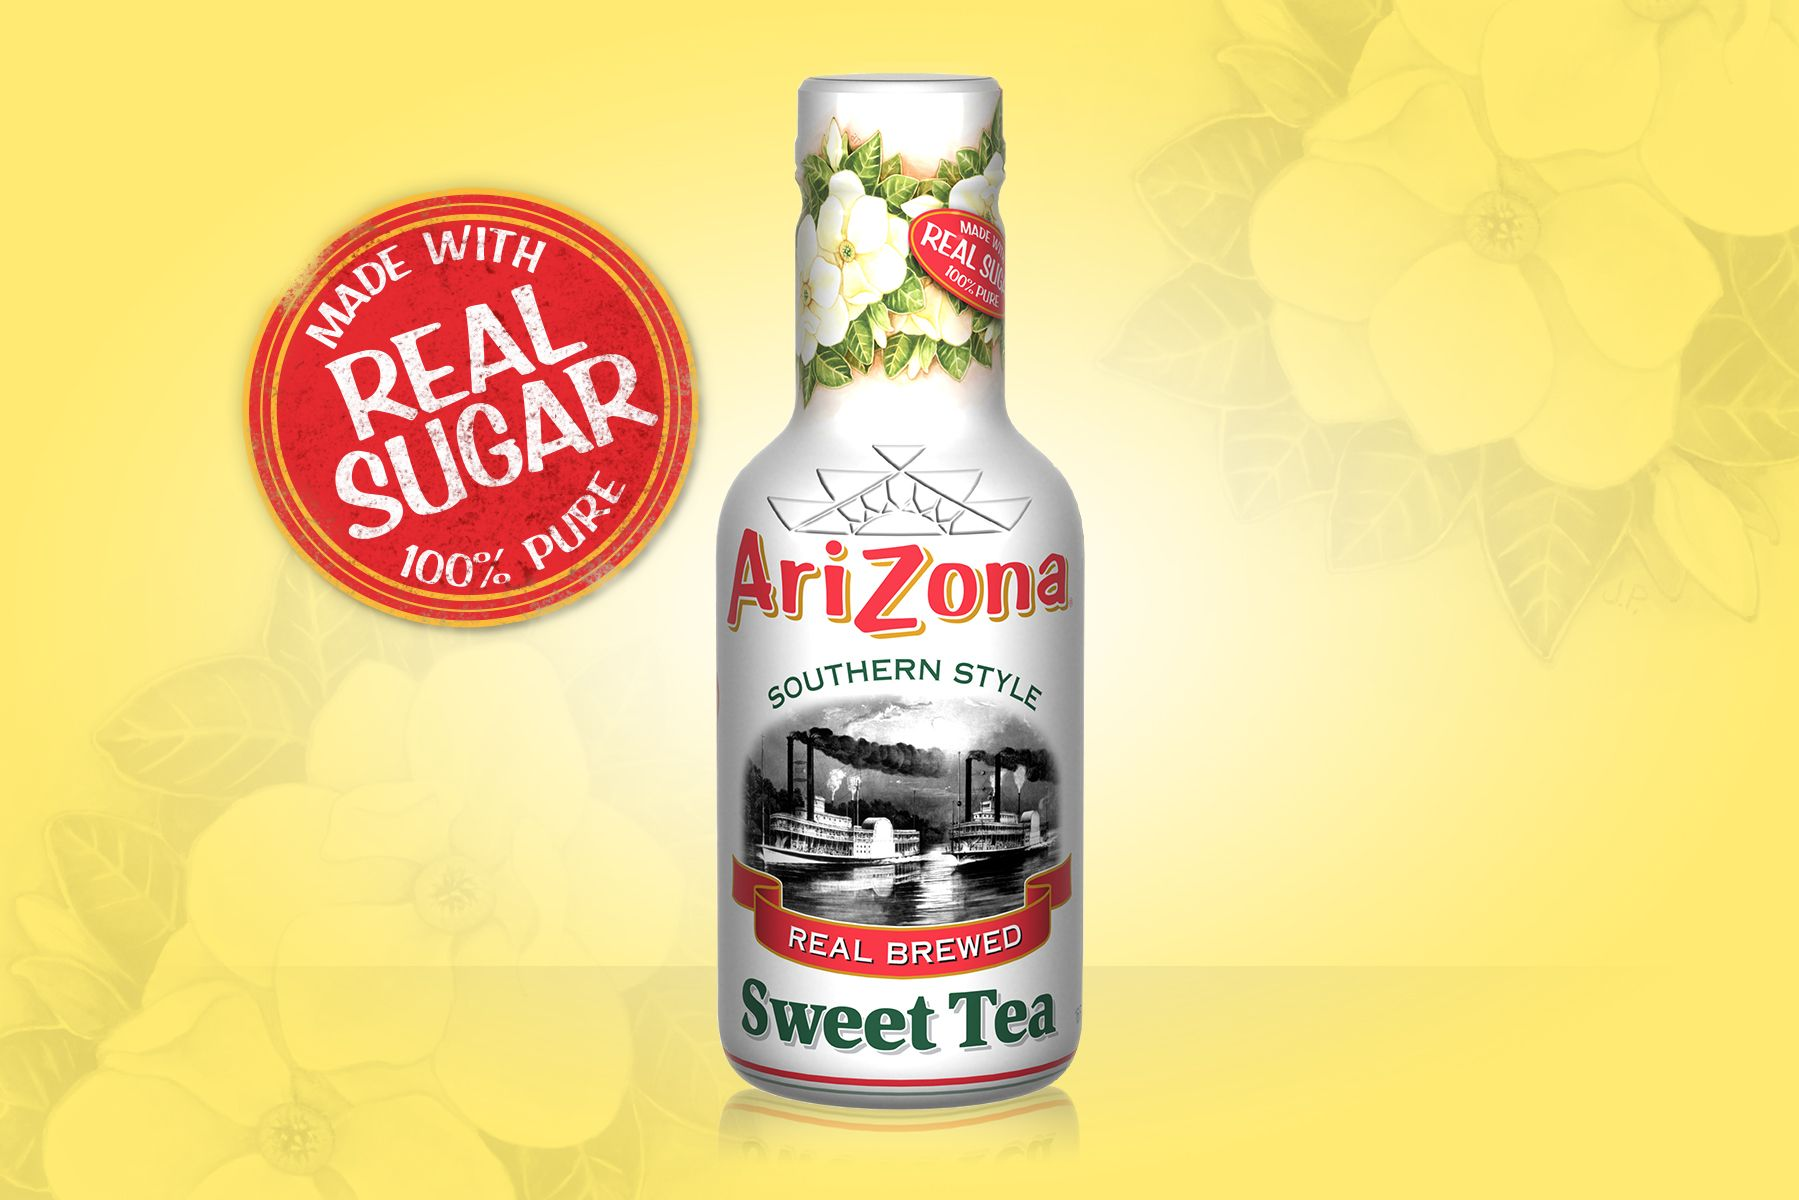 The Original Brand Sun Brewed Style Lemon Flavor Iced Tea That Put Arizona On Map Our First And Most Por Has A Taste Enough To